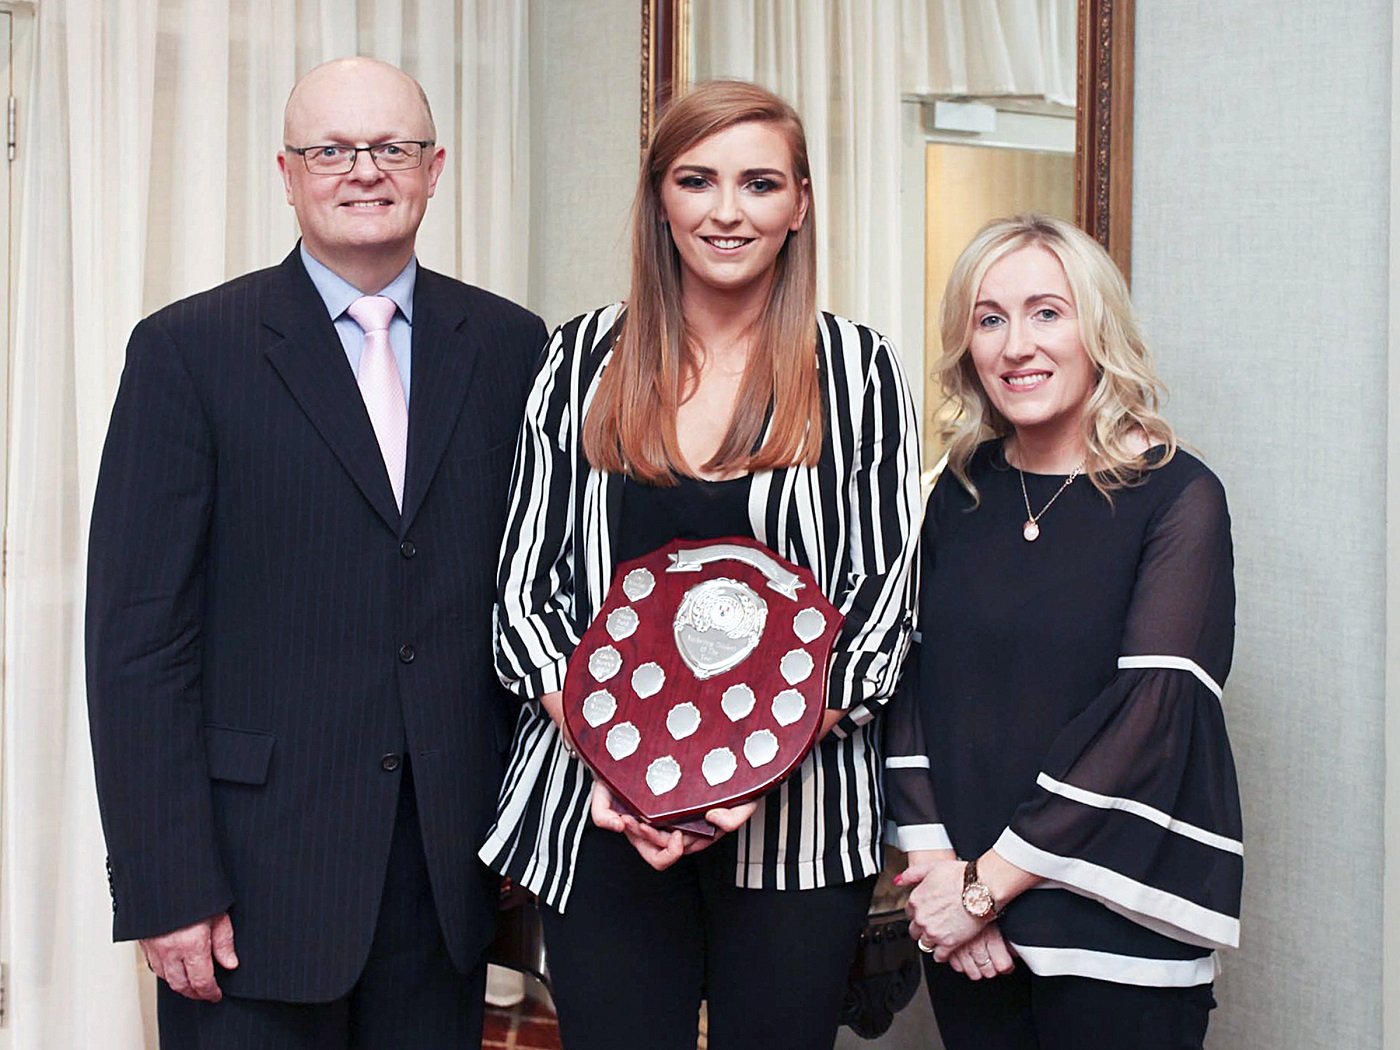 Dr Thomas O'Toole, Dean (Head) of the School of Business at WIT, Aoife McAuliffe, winner (Bachelor of Business (Hons) – Marketing specialisation), Dr Ethel Claffey, Stream Leader - BBS (Hons) Marketing.